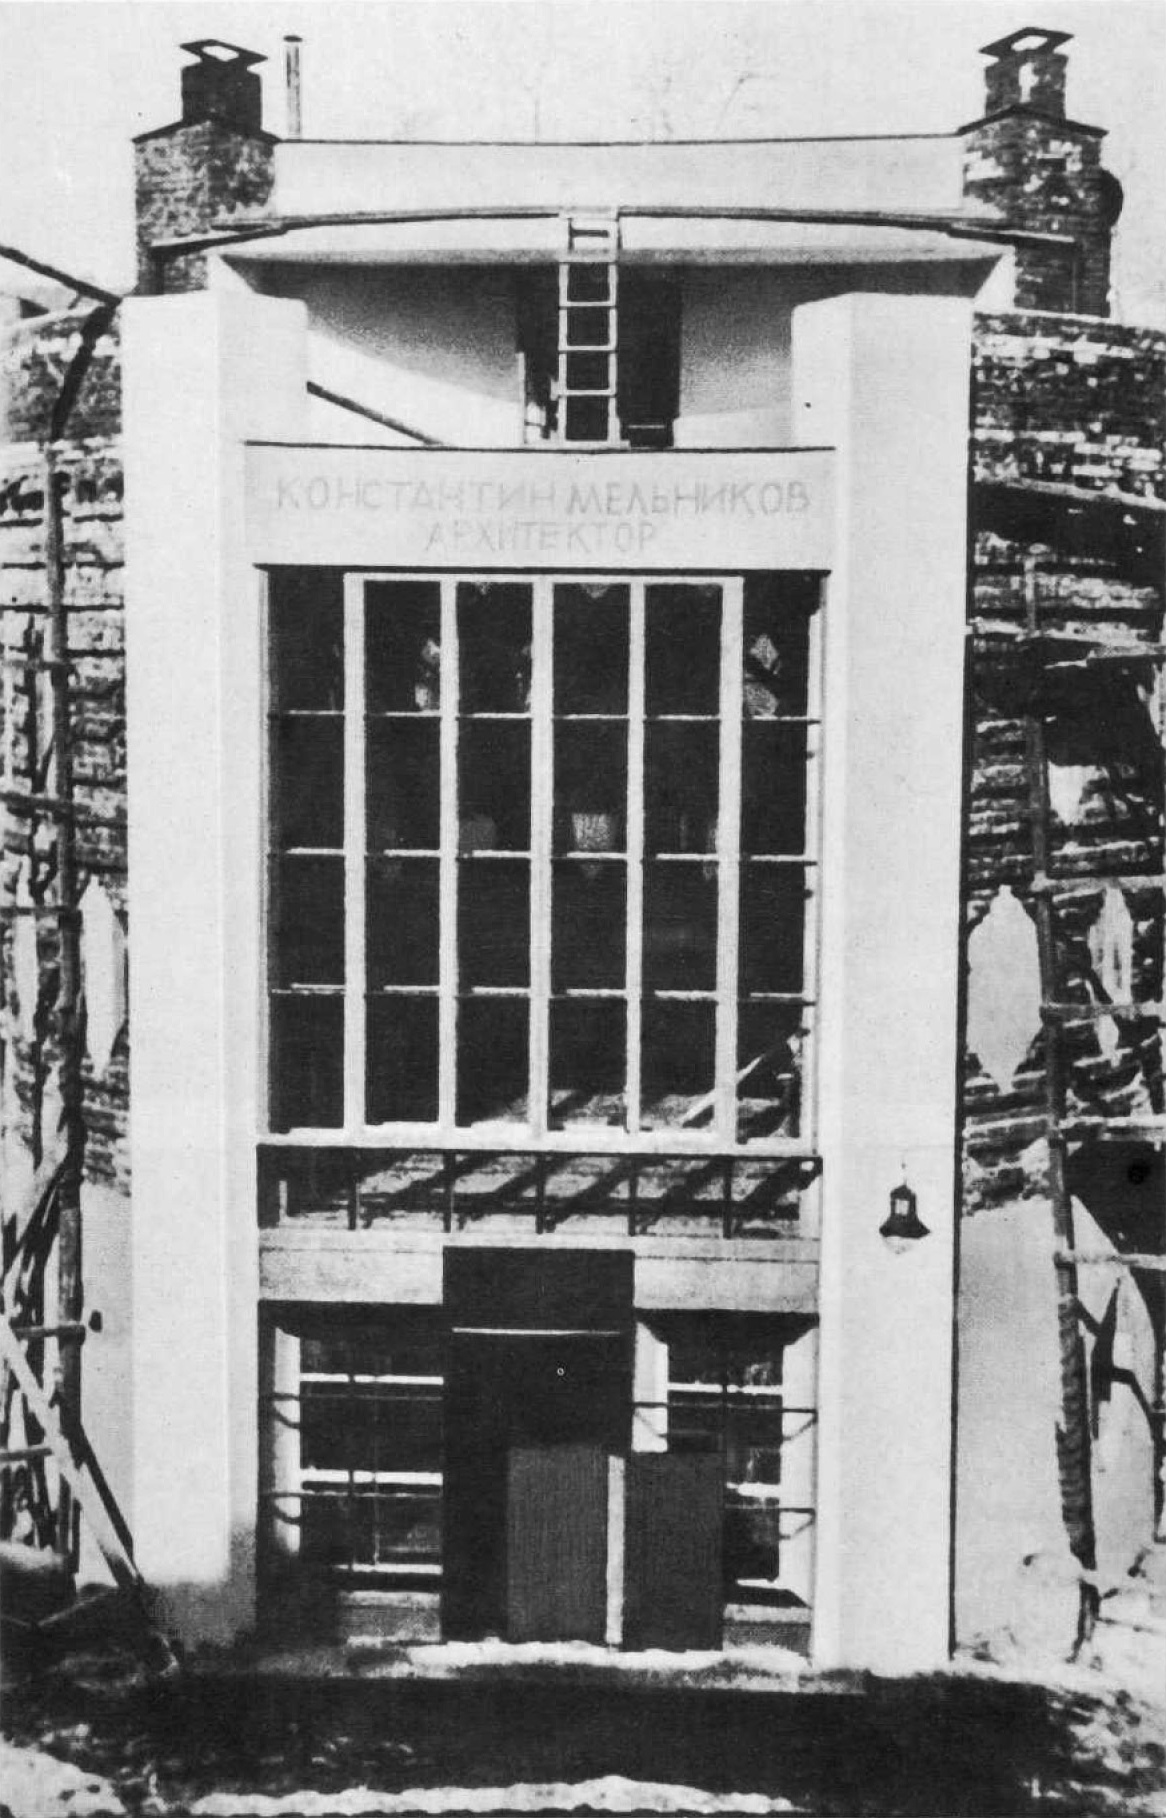 The main facade of Mel'nikov's house completed while the rest is still under construction (1928)